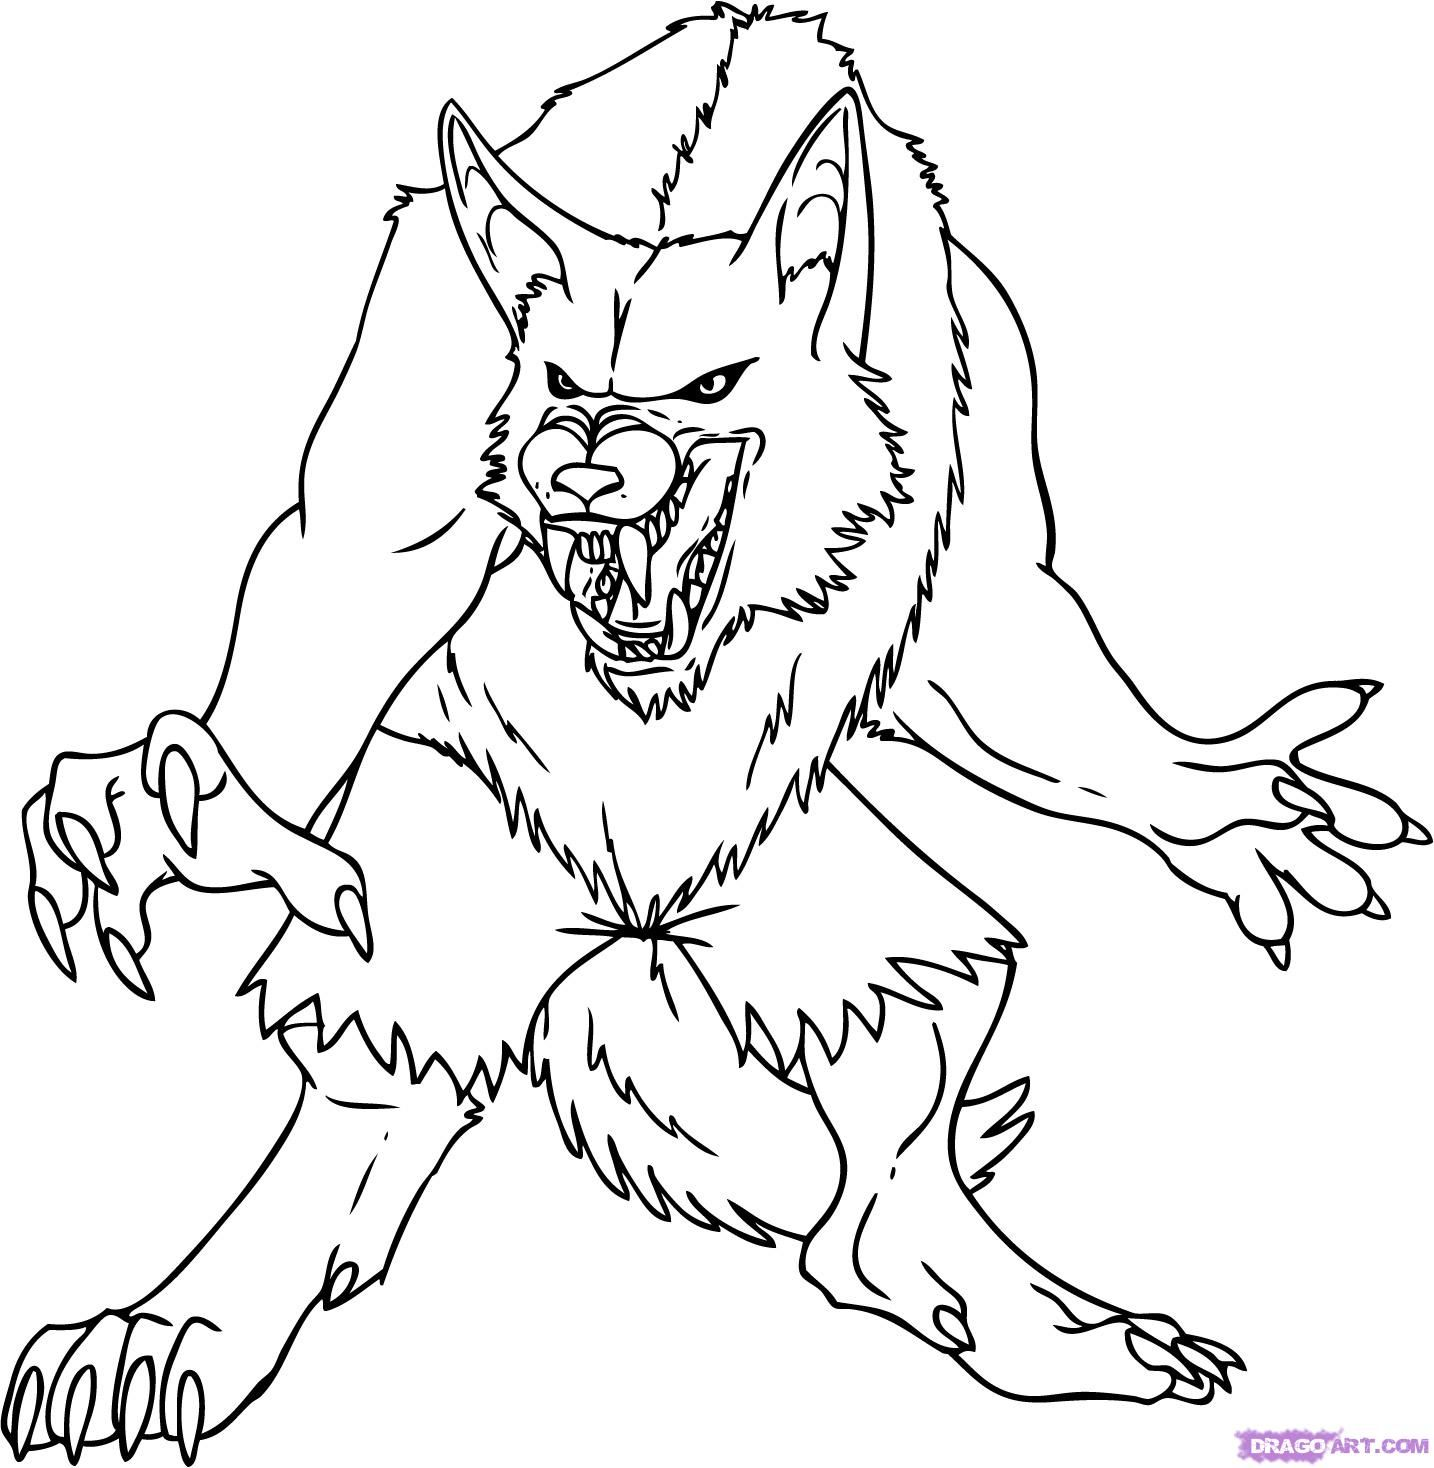 How To Draw A Cartoon Werewolf Step By Step Werewolves Monsters Free Online Drawing Tutorial Added B Monster Coloring Pages Animal Coloring Pages Werewolf